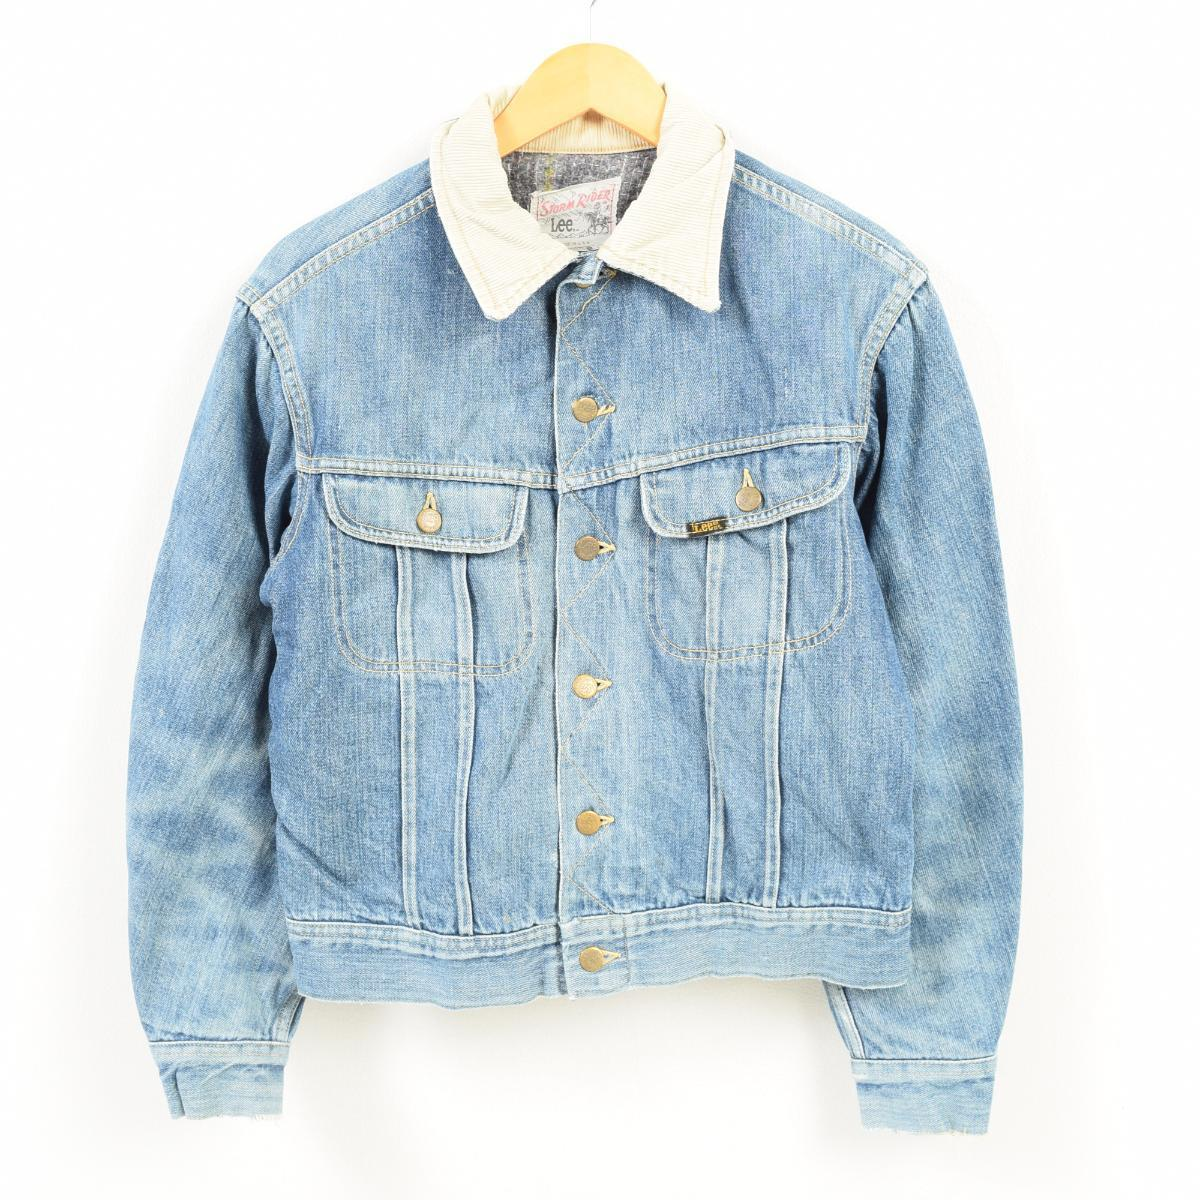 3f2eb08a Men S vintage /wak8662 in the 70-80 generation made in Lee Lee STORM RIDER  storm rider denim jacket G Jean USA